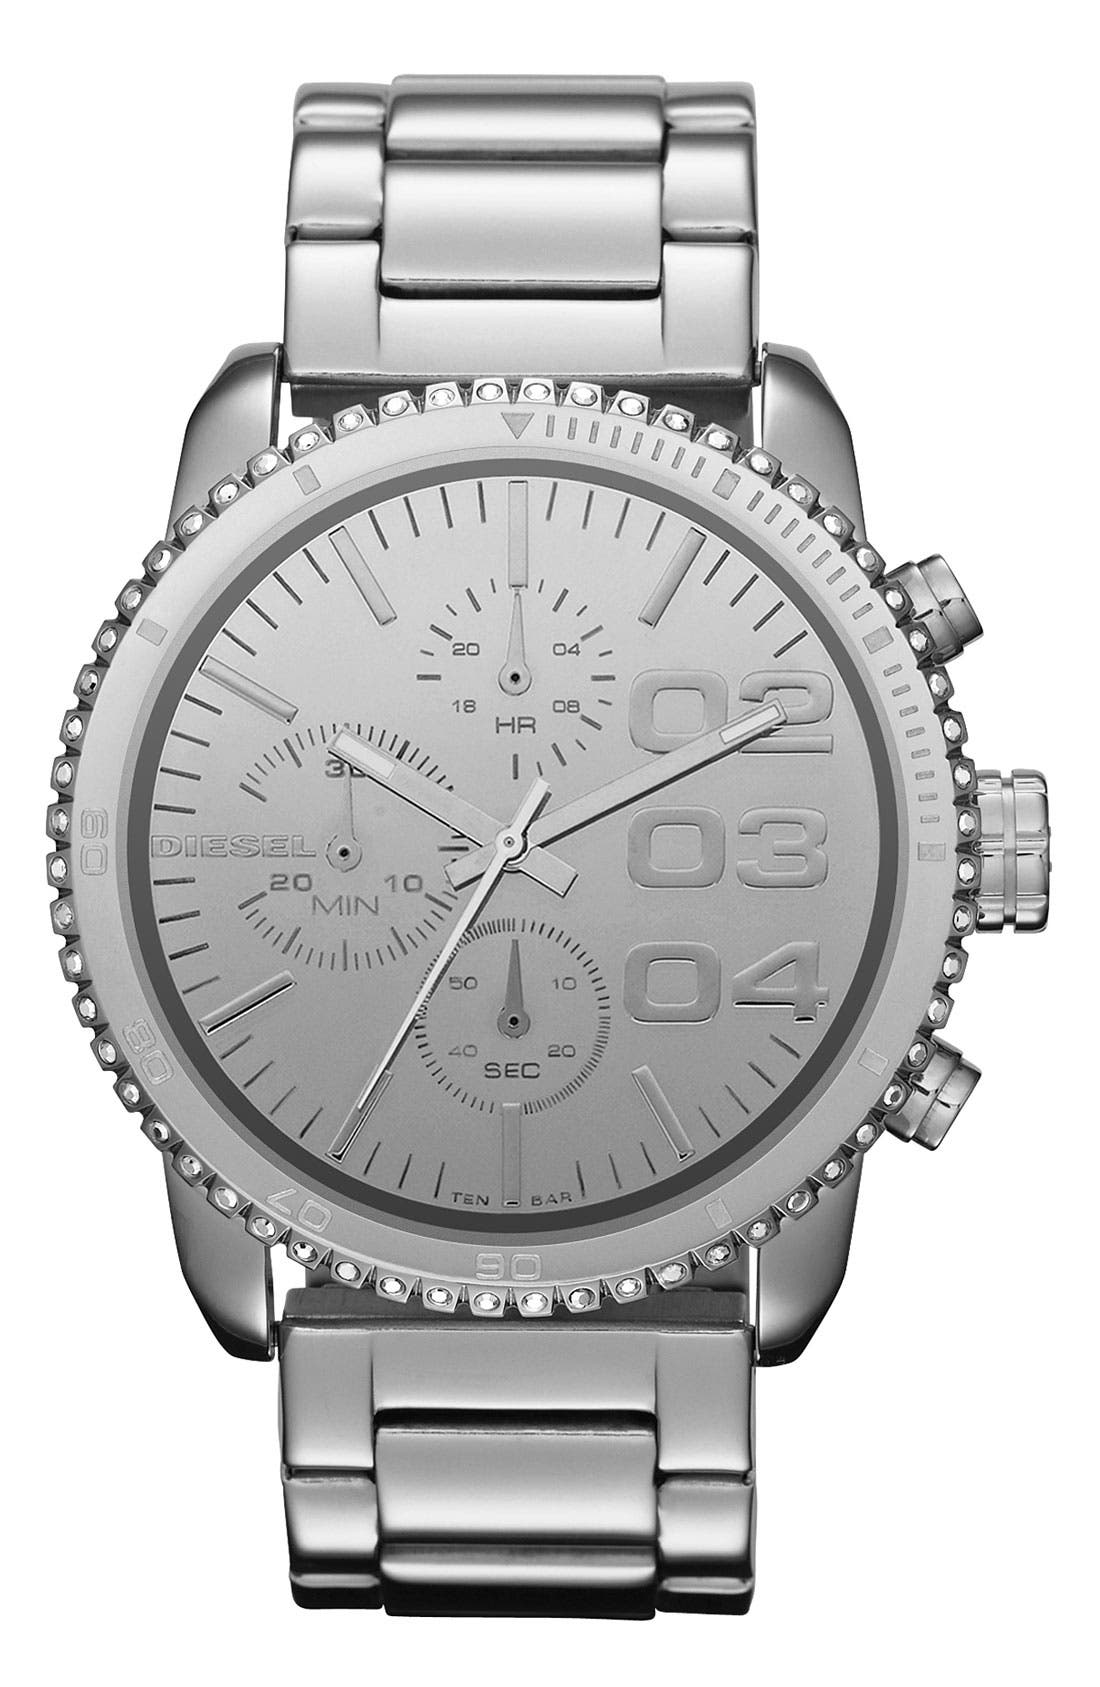 Main Image - DIESEL® 'Franchise' Chronograph Bracelet Watch, 42mm x 46mm